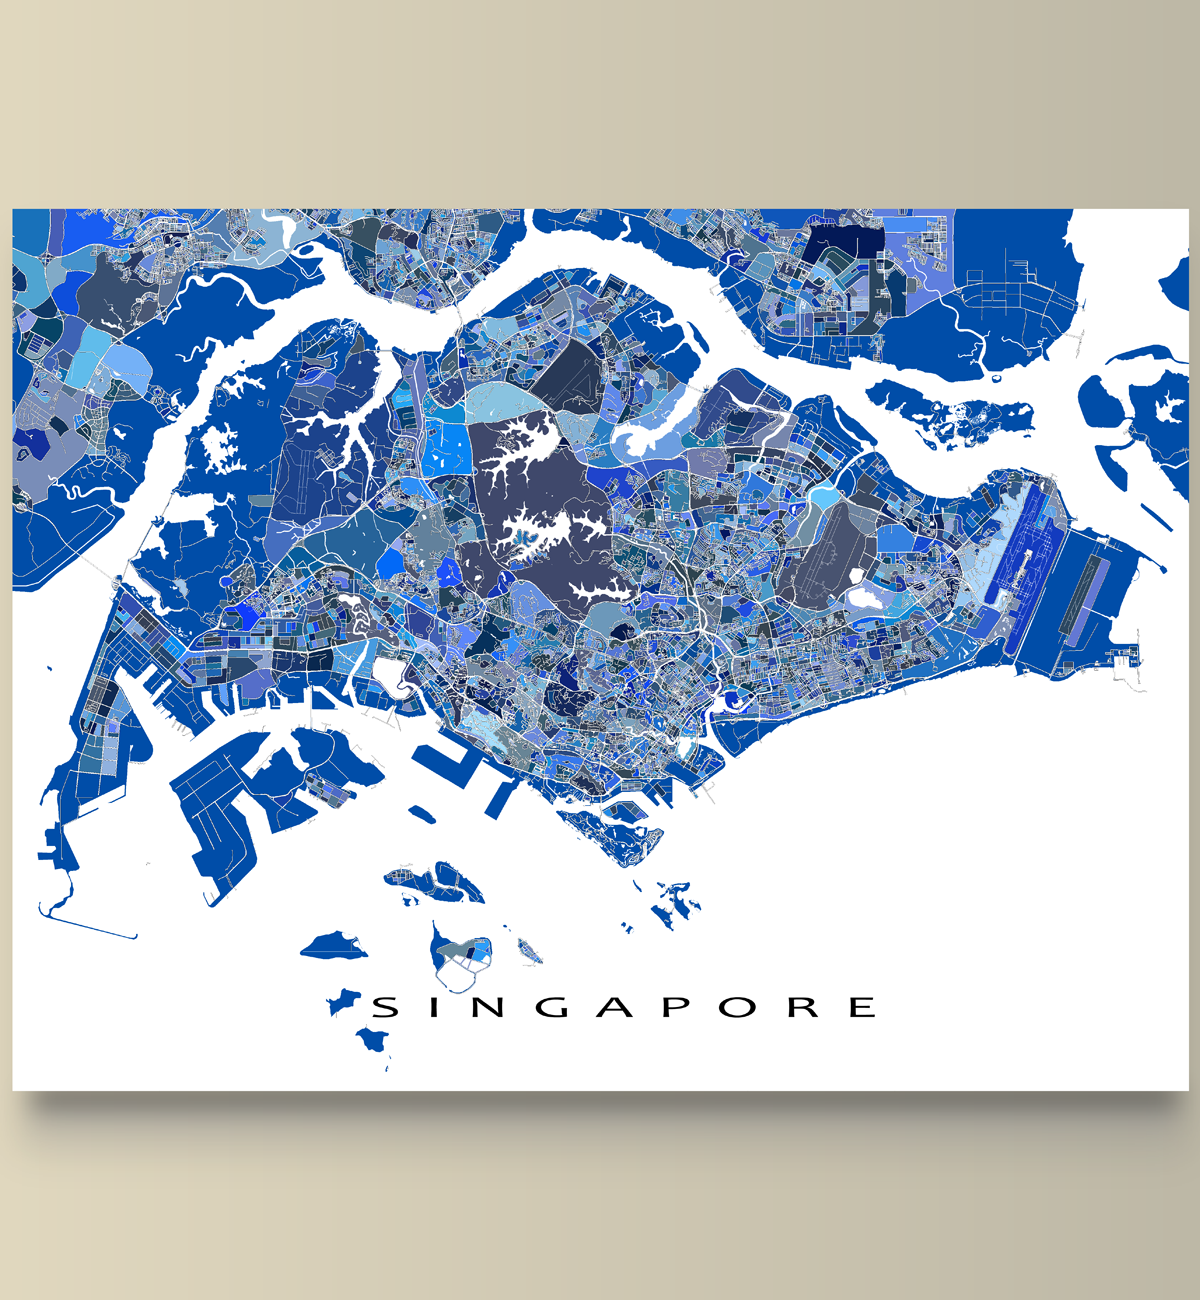 Singapore map singapore print asia city map travel art asia map had a great trip to singapore planning a vacation or just lucky enough to live there then this singapore map print is for you this city street map has gumiabroncs Images